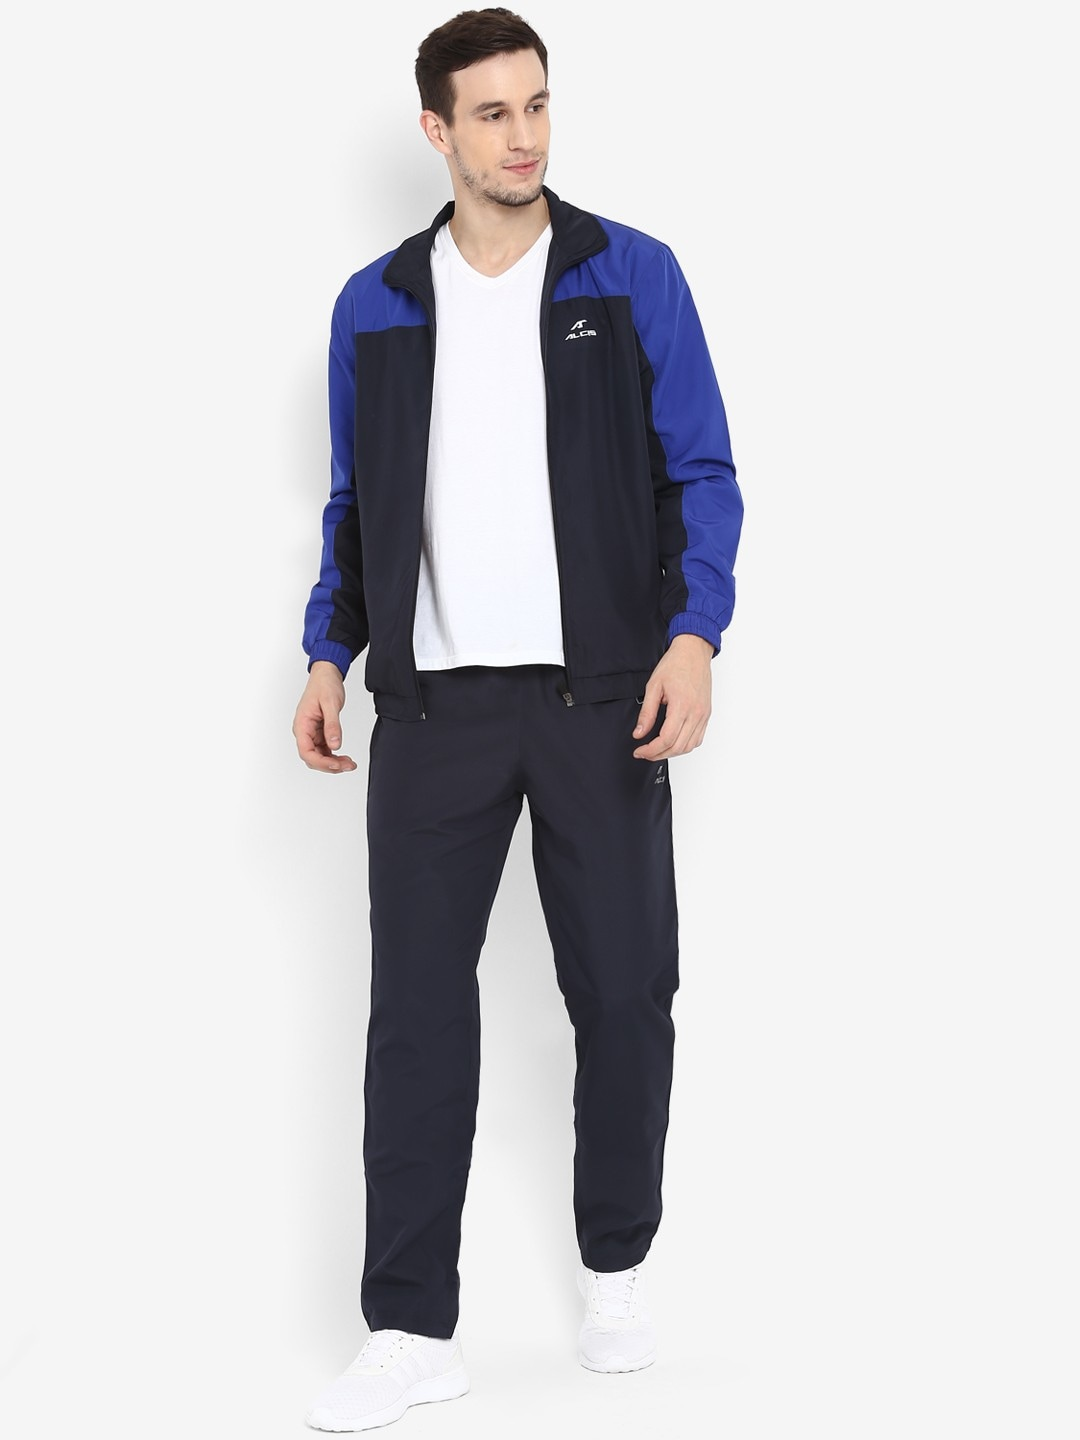 Robe Tracksuits - Buy Robe Tracksuits online in India 25b1401e0